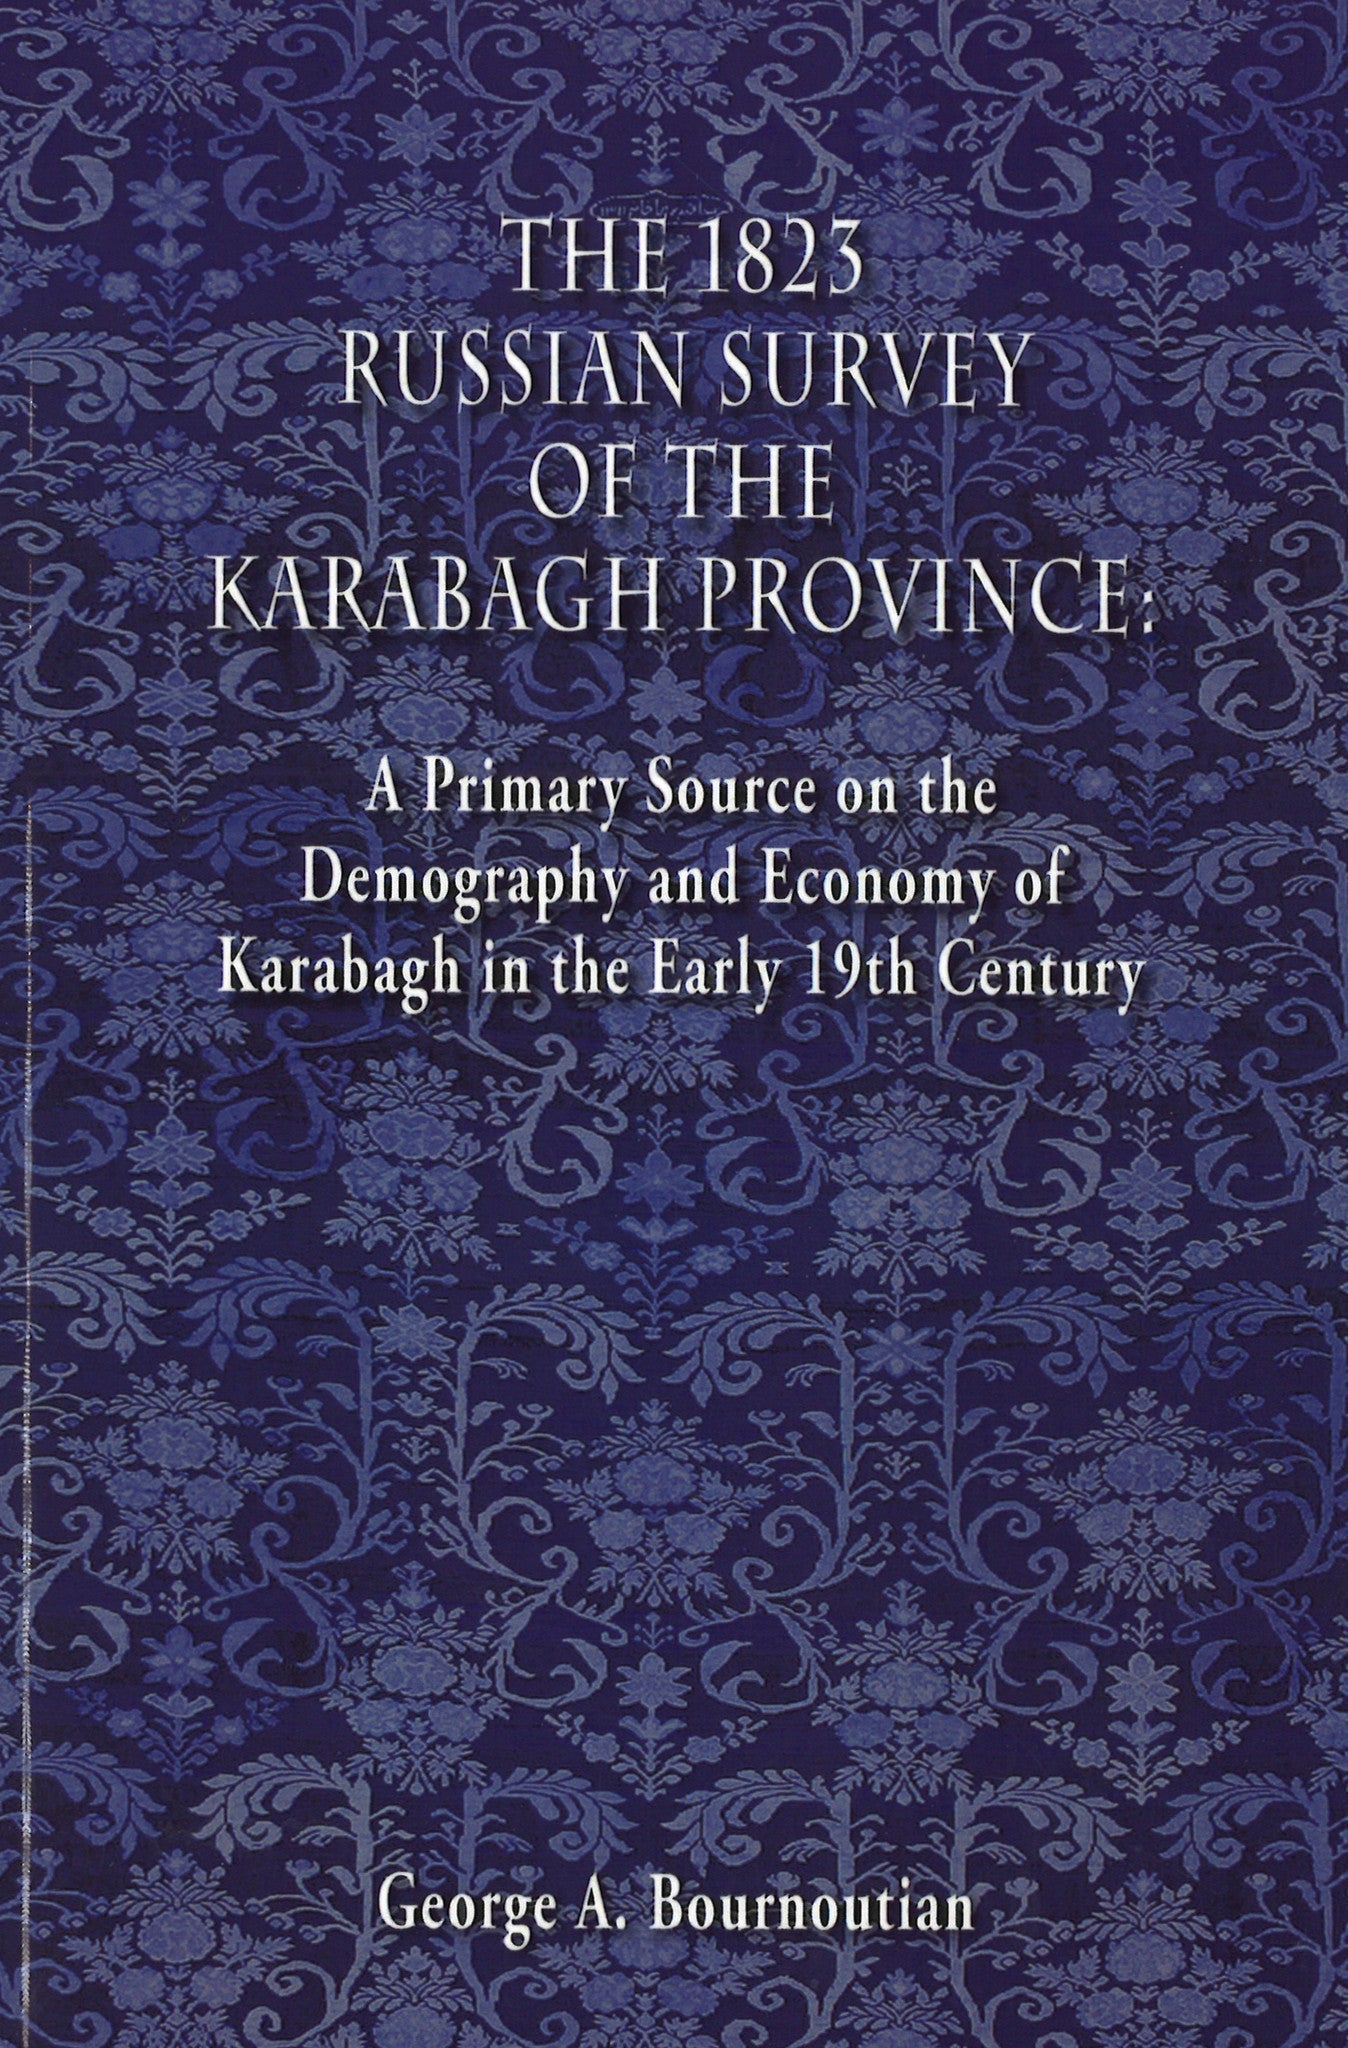 1823 RUSSIAN SURVEY OF THE KARABAGH PROVINCE